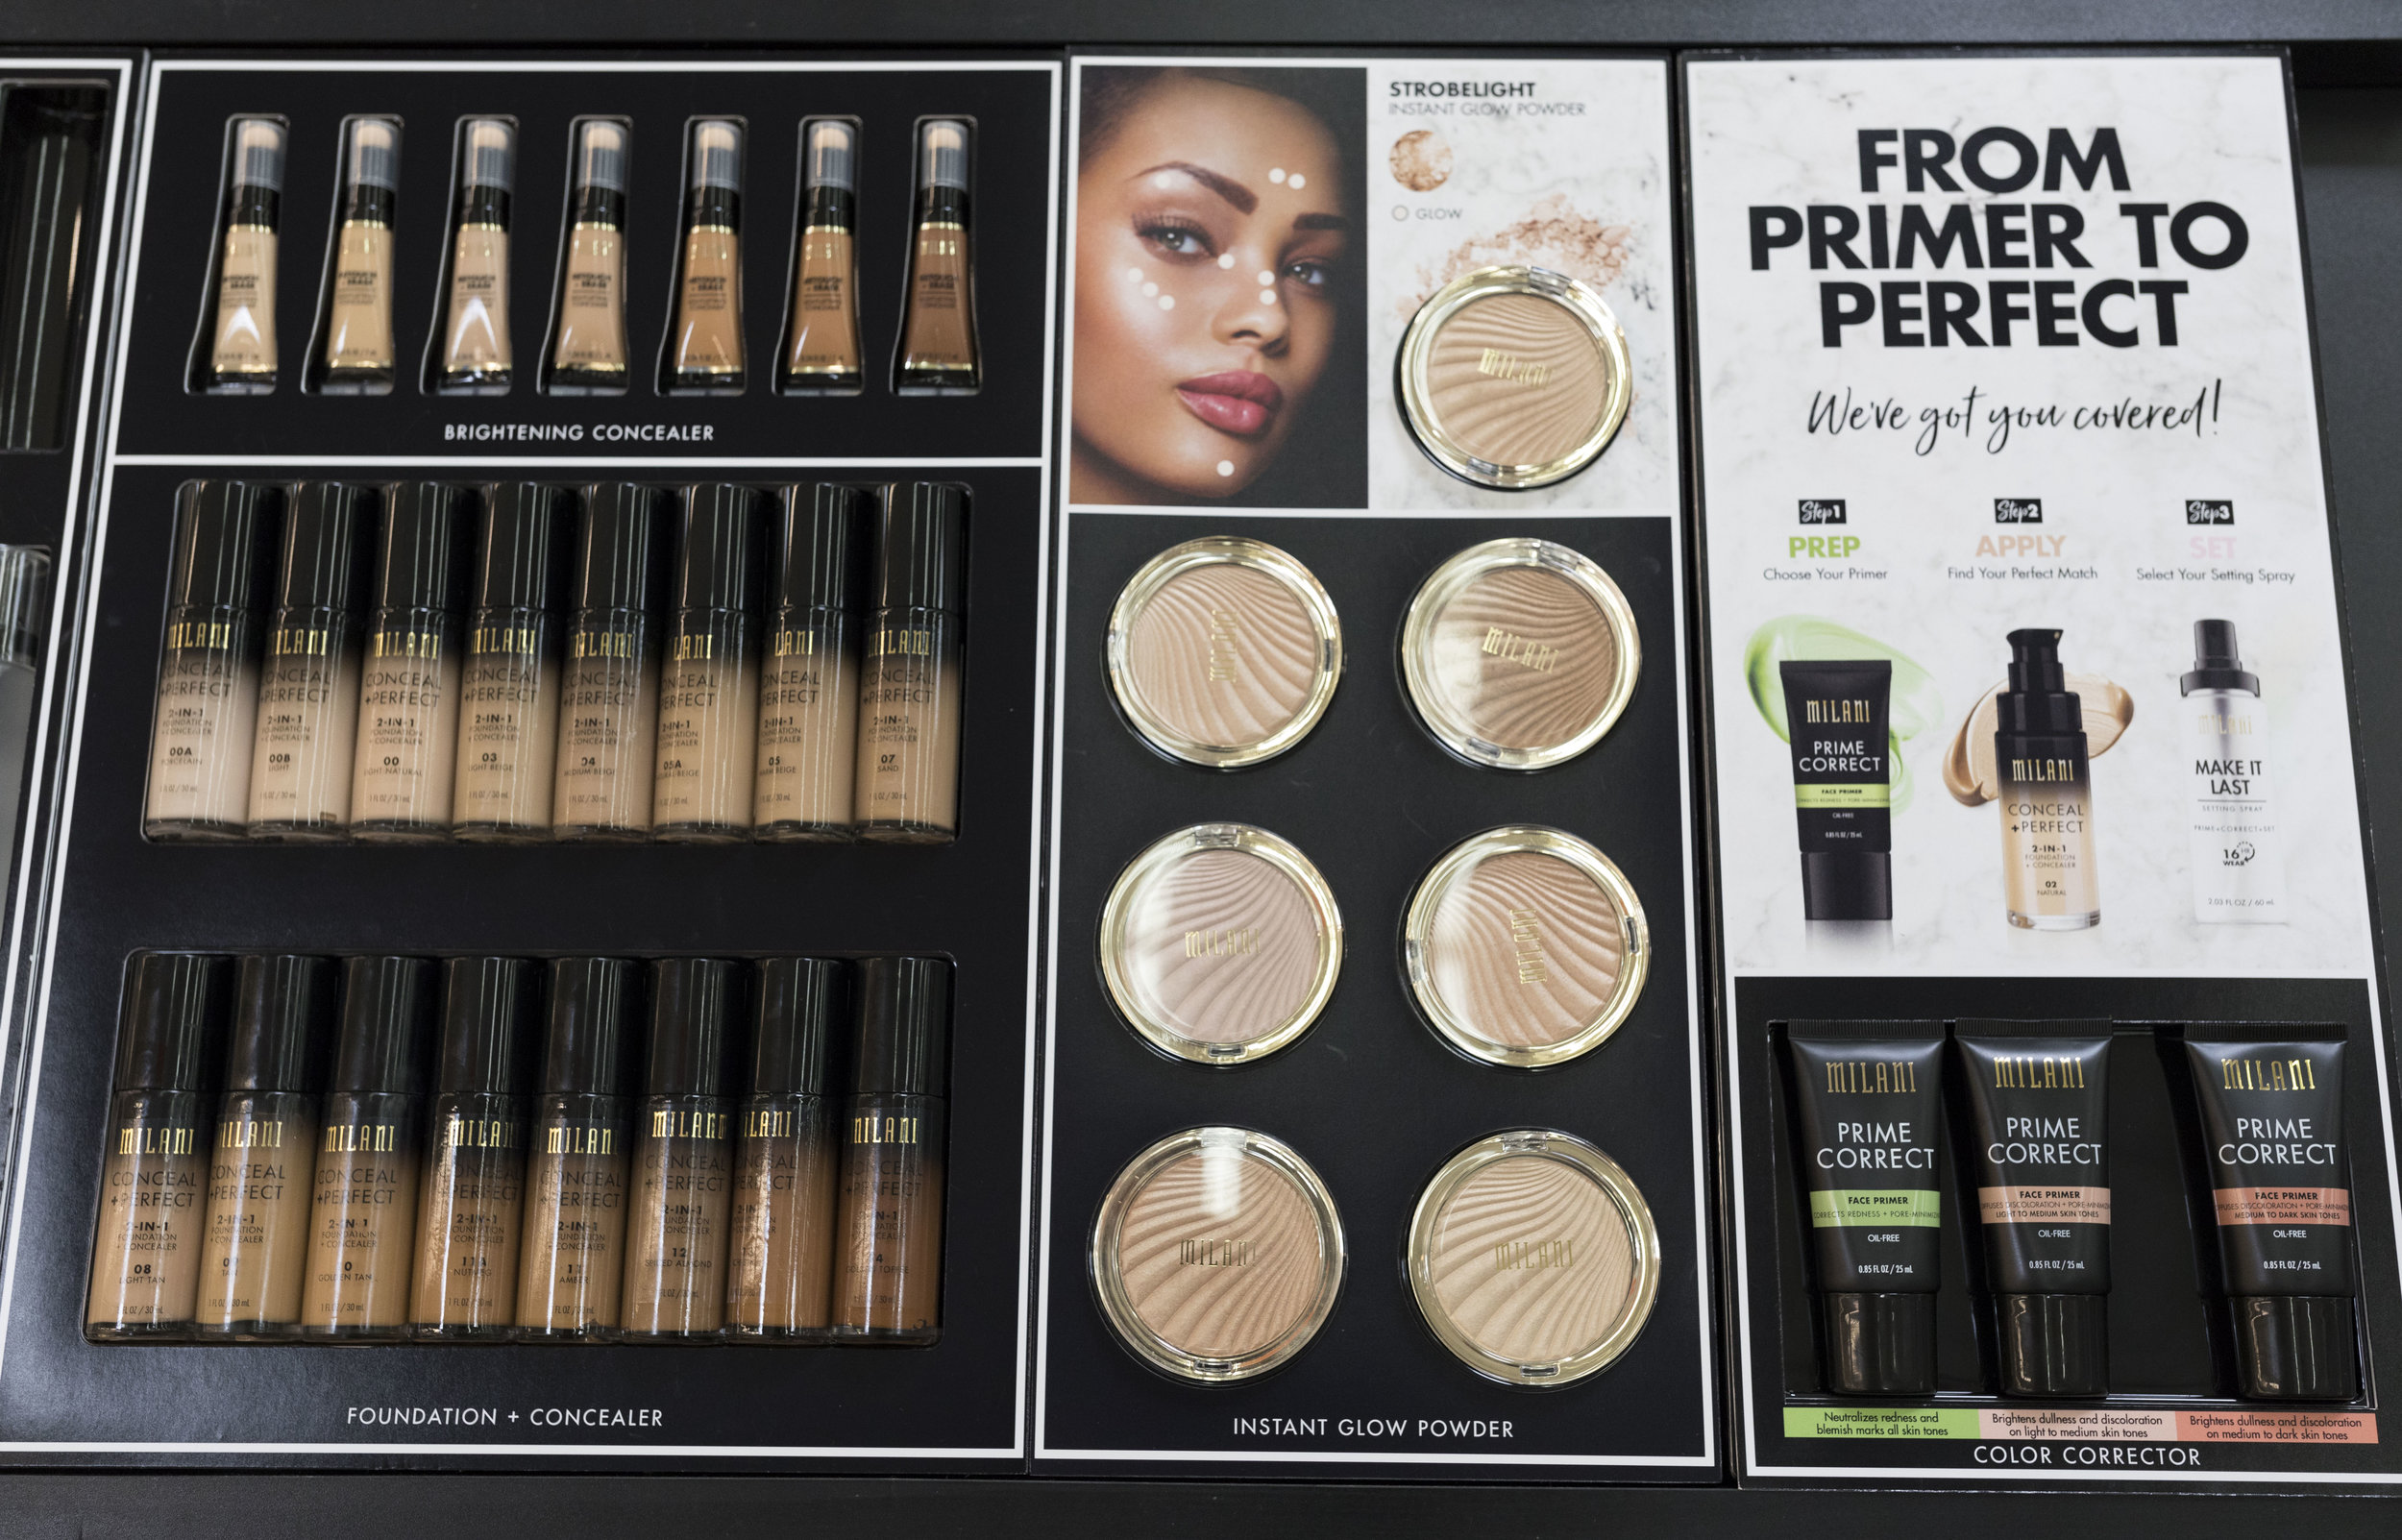 Walmart Fall Beauty Preview x Krity S x Milani Makeup